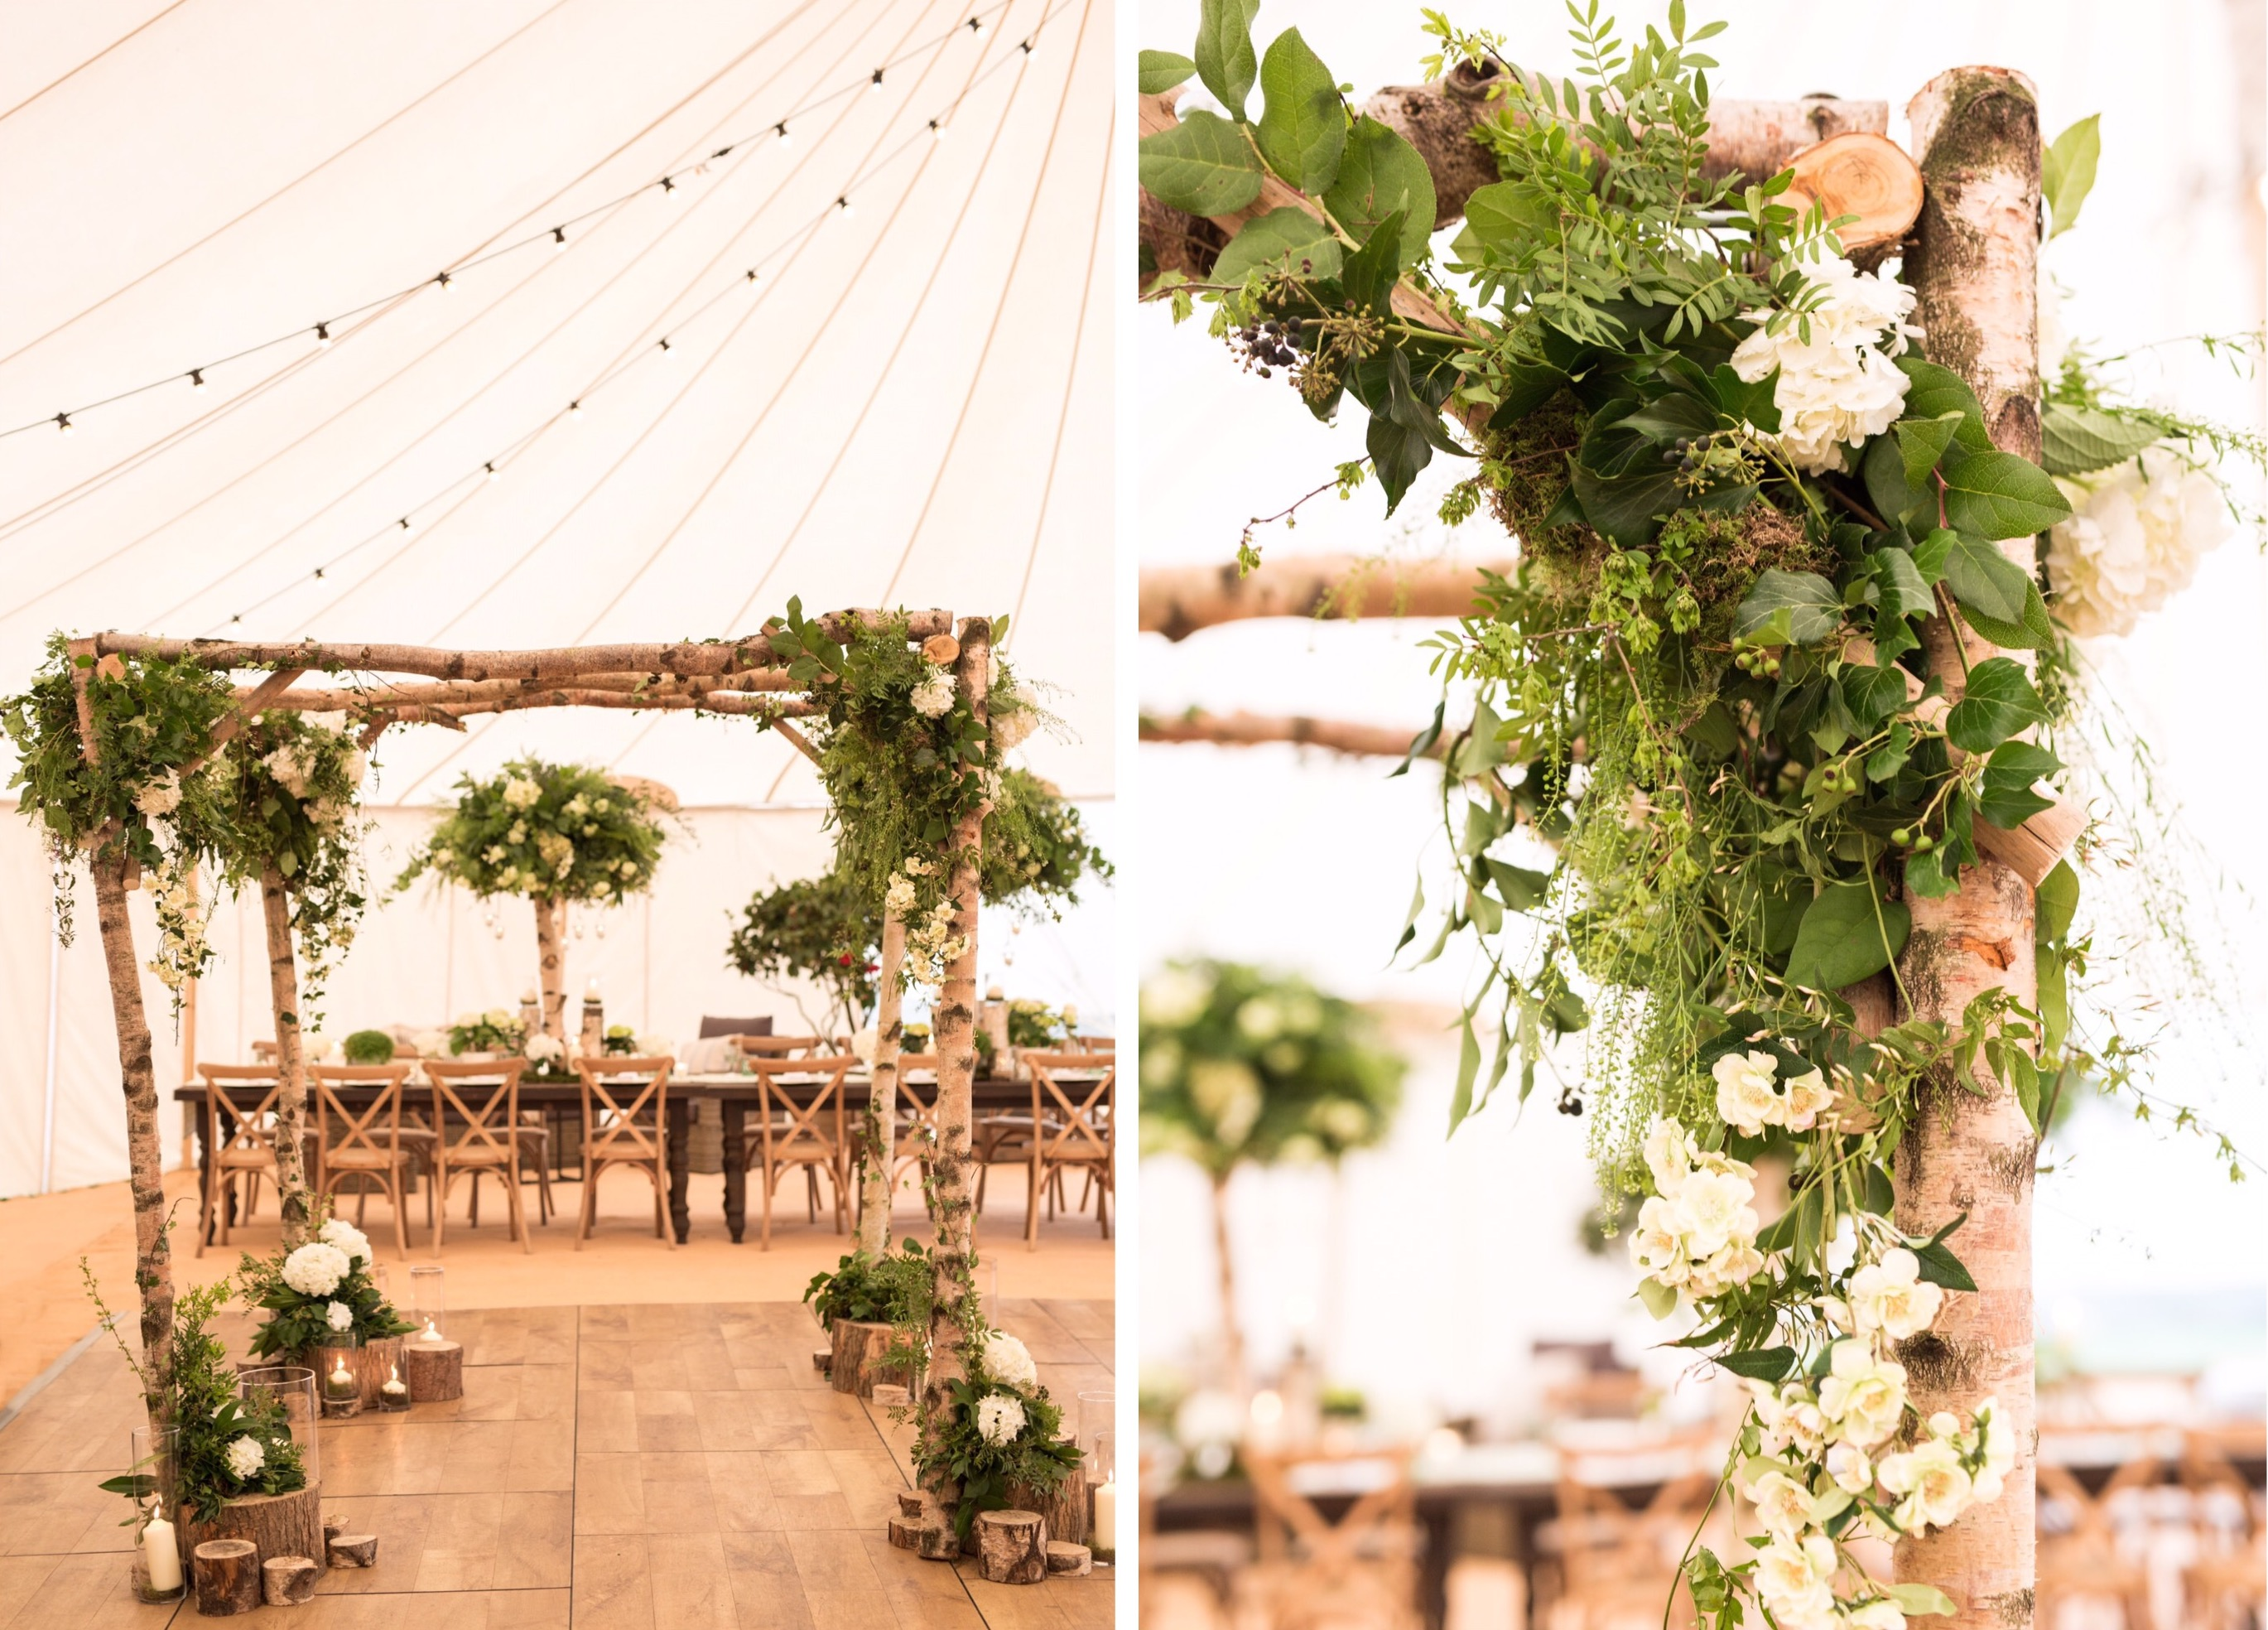 The new addition to our portfolio of luxury furnishings: Chuppah ceremony arch